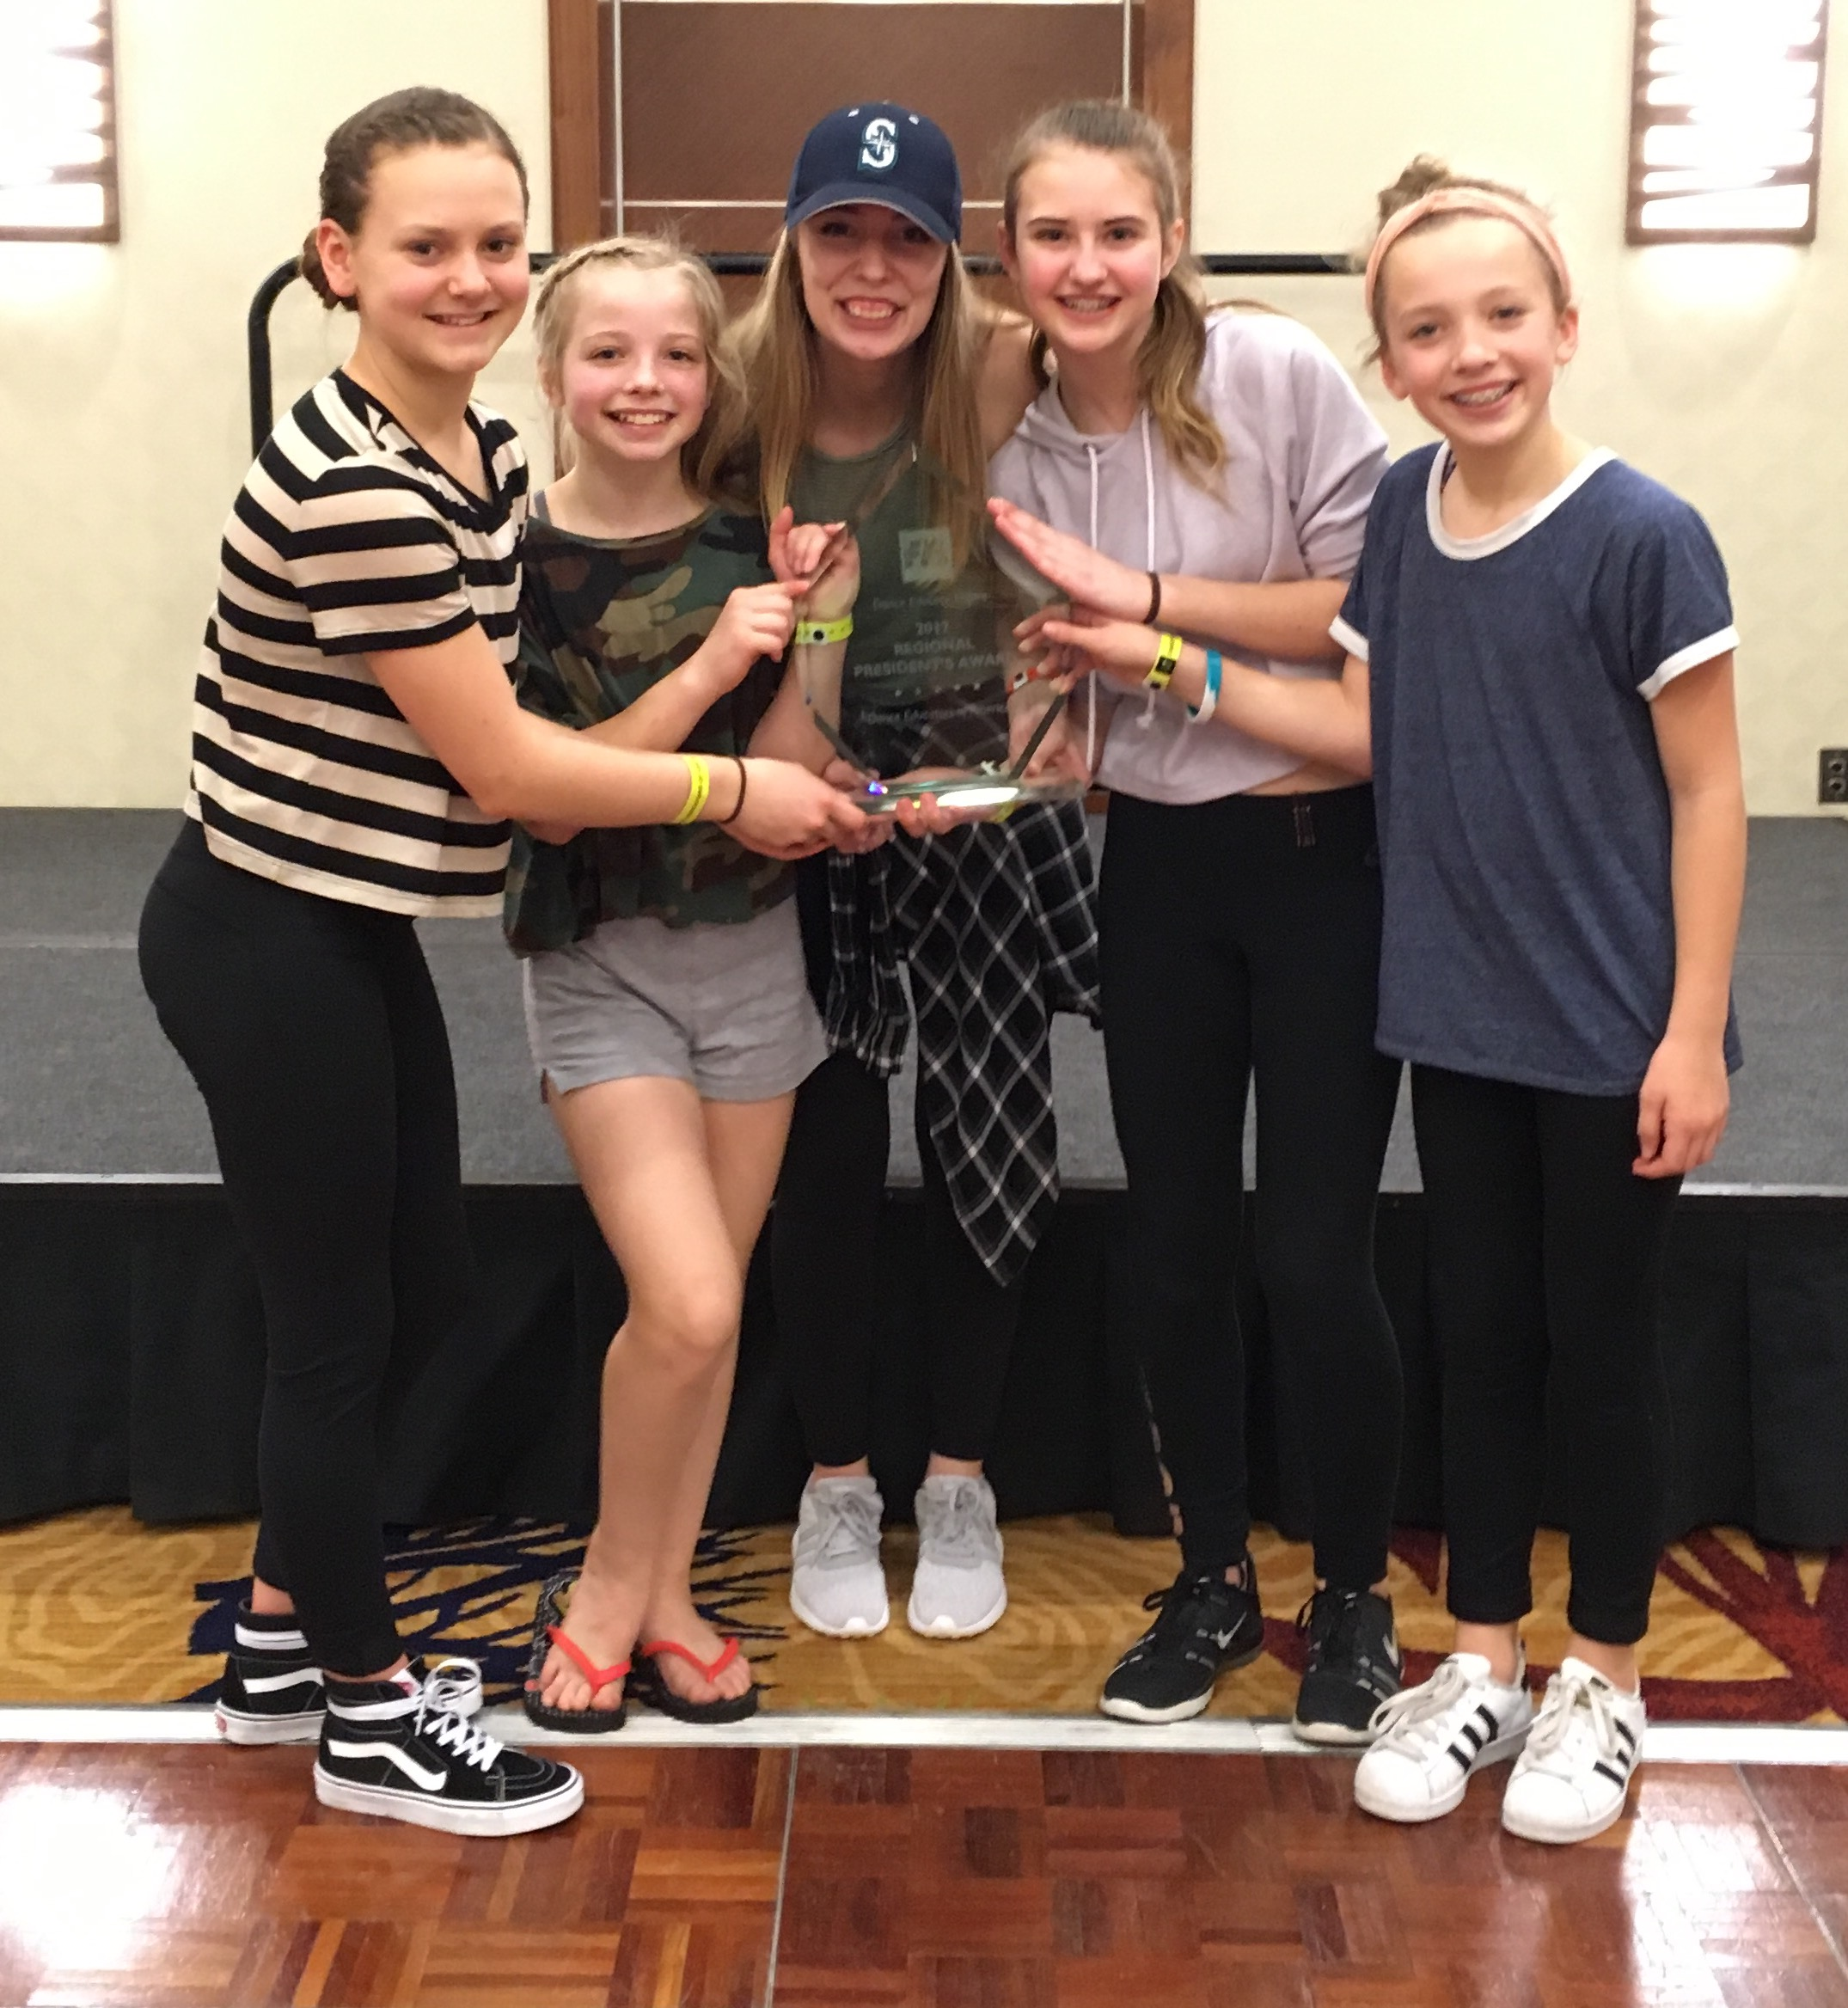 """""""Clap Your Hands"""" choreographed by Sami Leyde received the President's Award for overall highest score of all combined groups, lines & productions at DEA Seattle Convention!"""